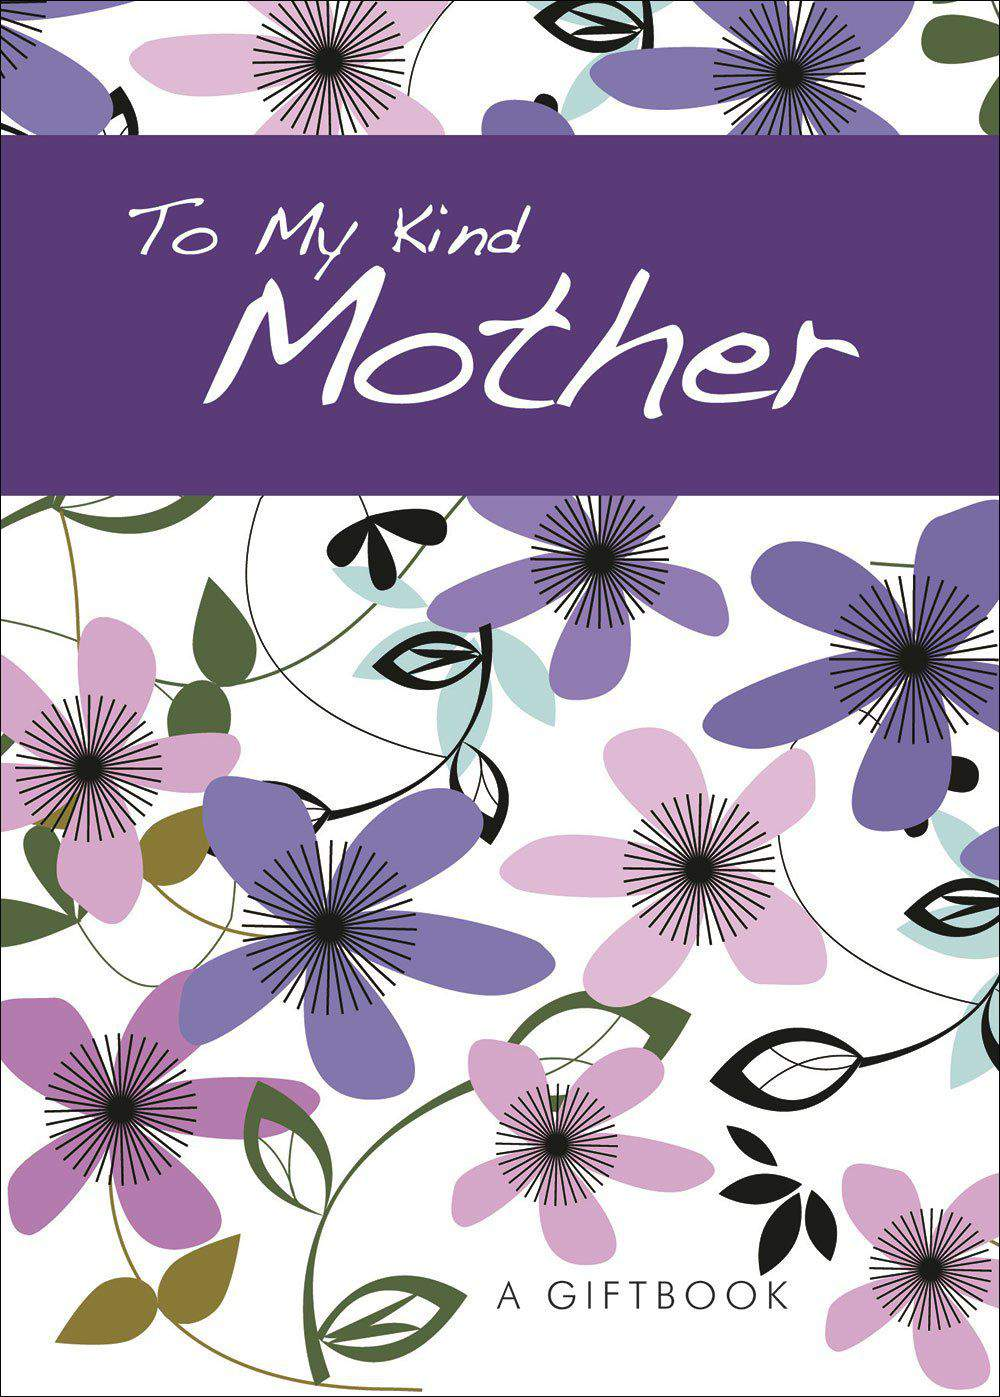 To My Kind Mother